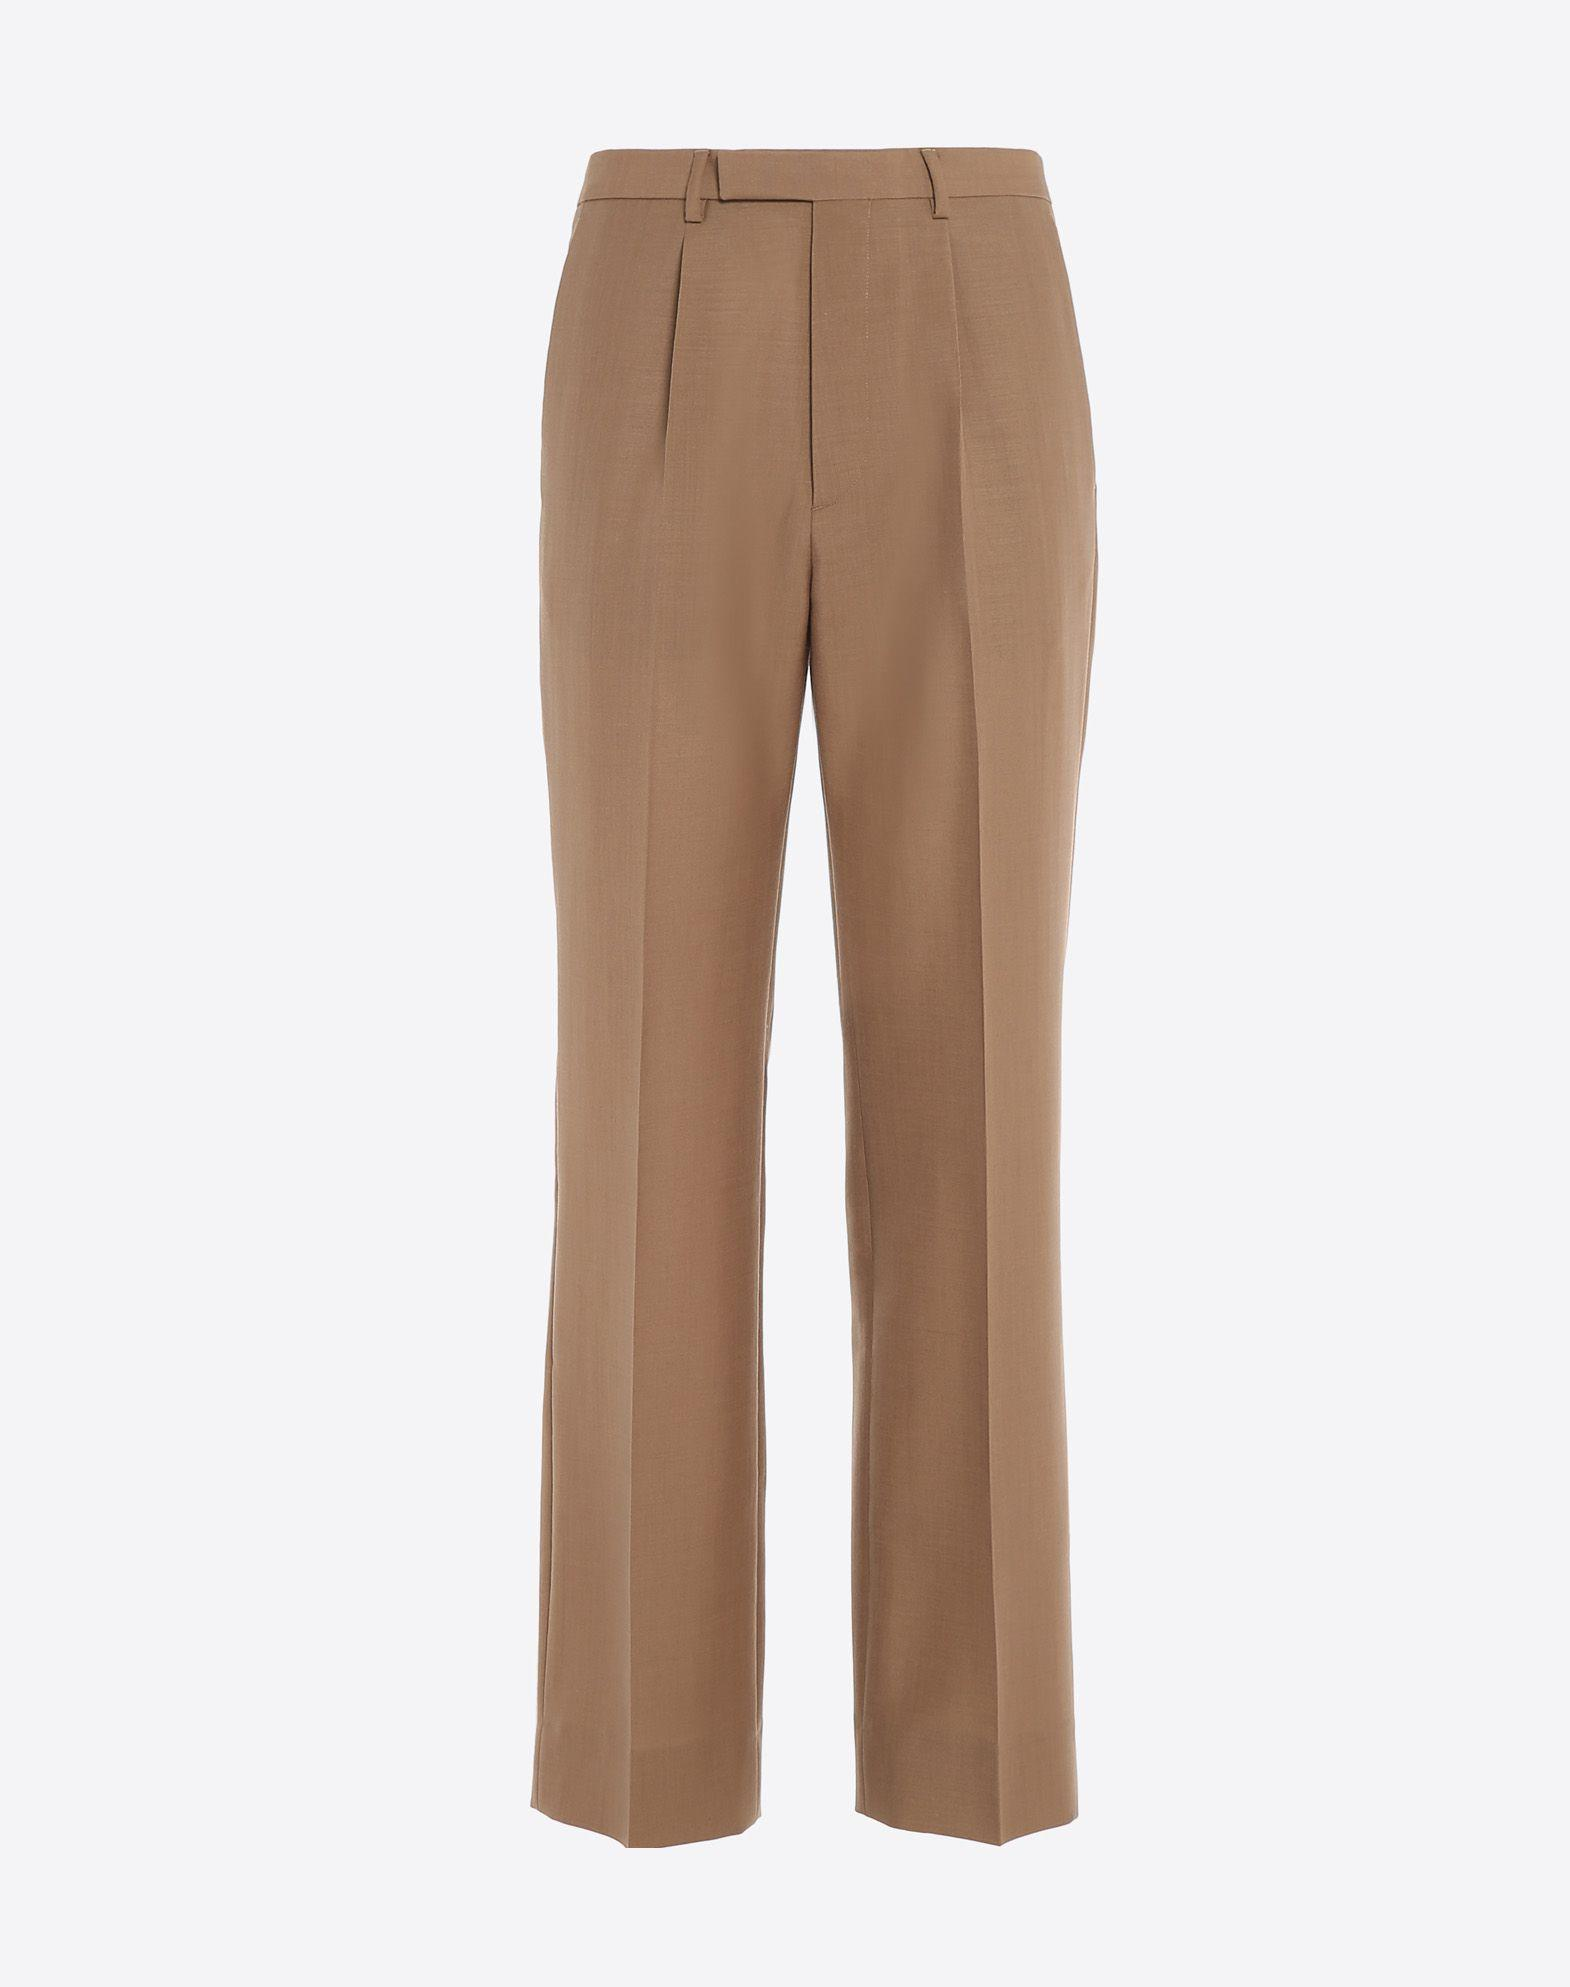 Valentino Formal Pants In Brown For Men | Lyst